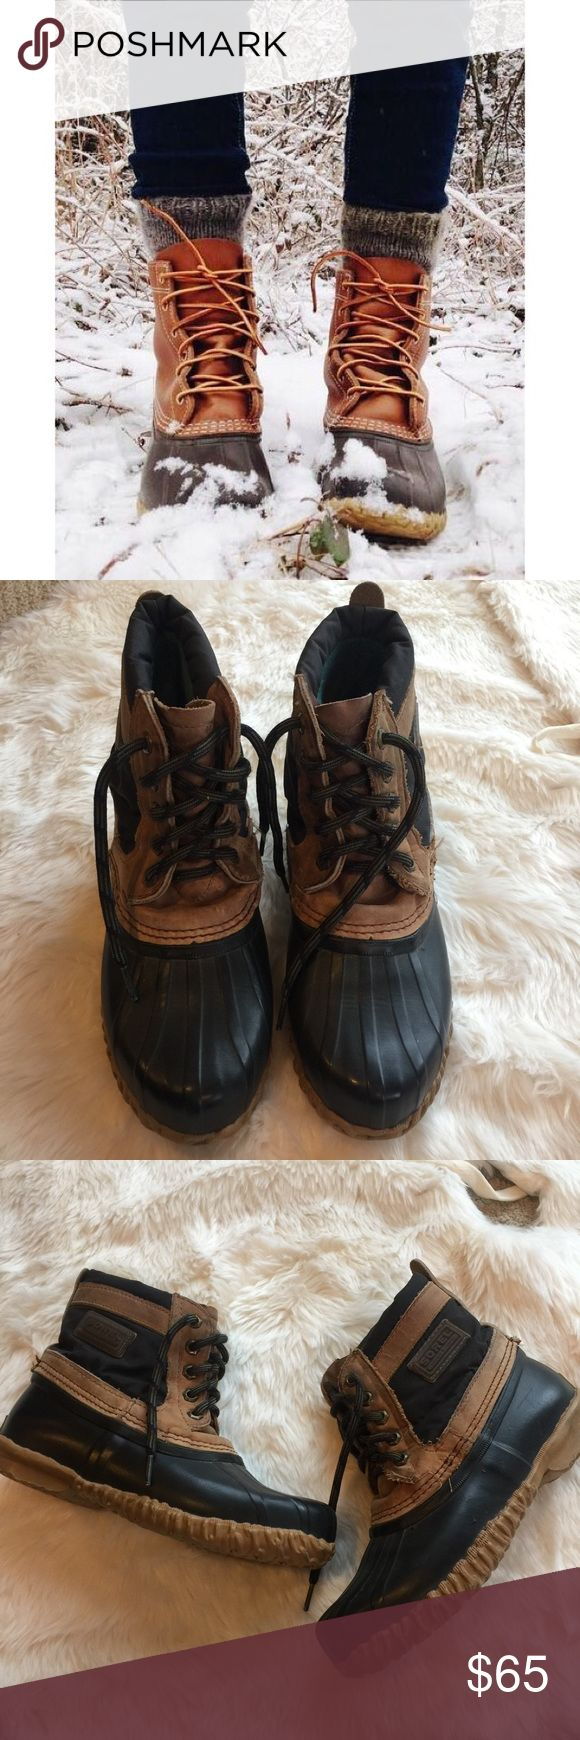 Vintage Sorel Duck Boots AMAZING VINTAGE Sorel Duck Boots. These boots are so cute and comfortable! Perfect for camping, hiking, fishing, or bonfire nights! These boots are pre-loved and have some flaws due to their age but they still have a lot of life left in them! Size 7 Sorel Shoes Winter & Rain Boots